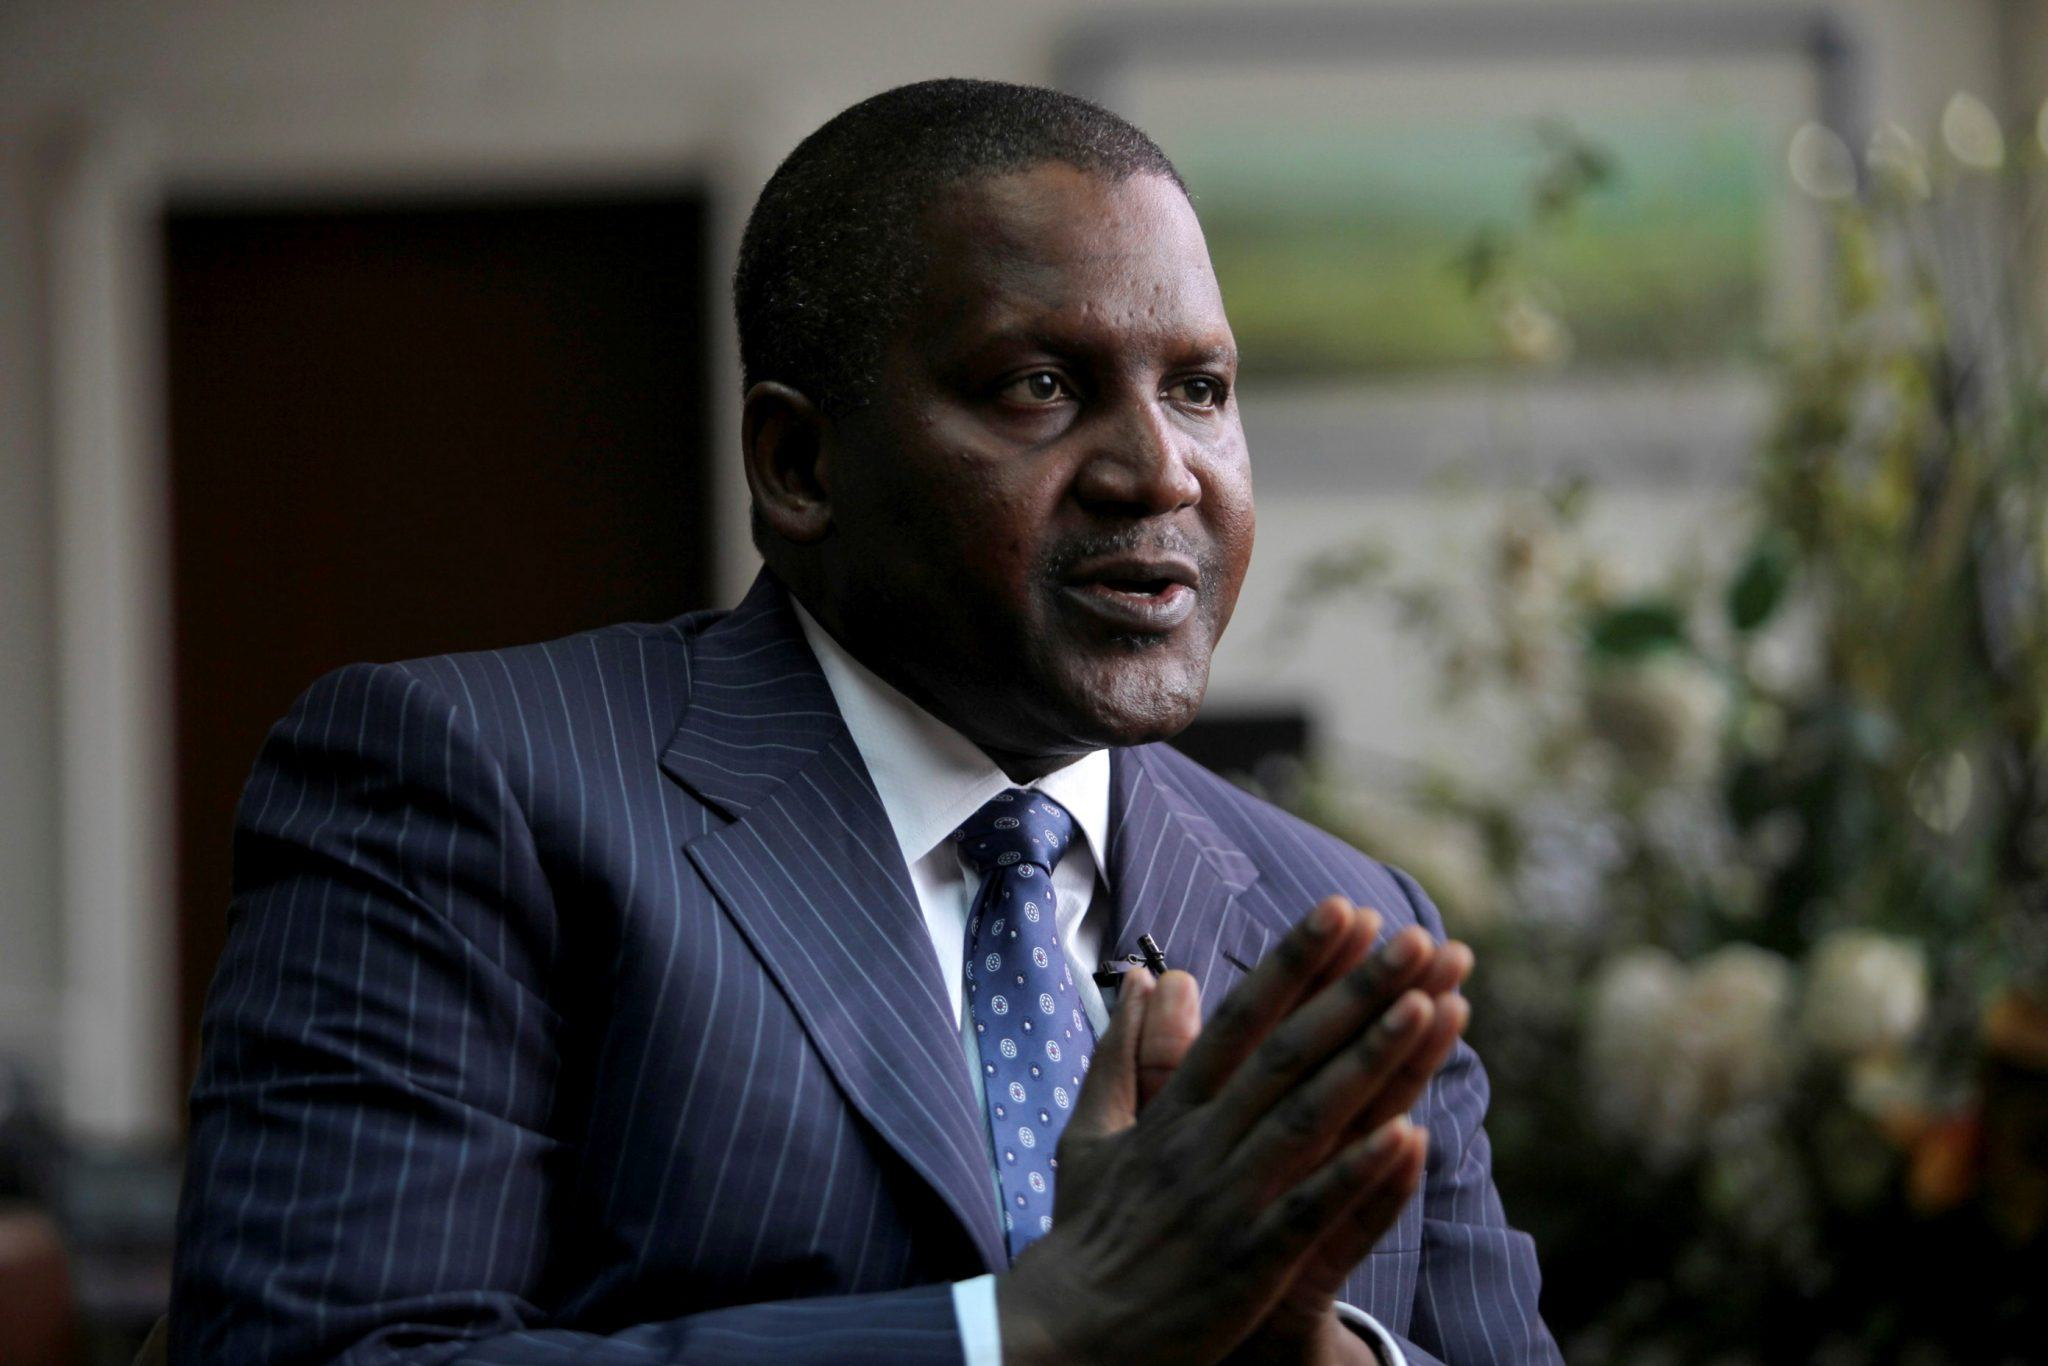 Founder and Chief Executive of the Dangote Group, Aliko Dangote